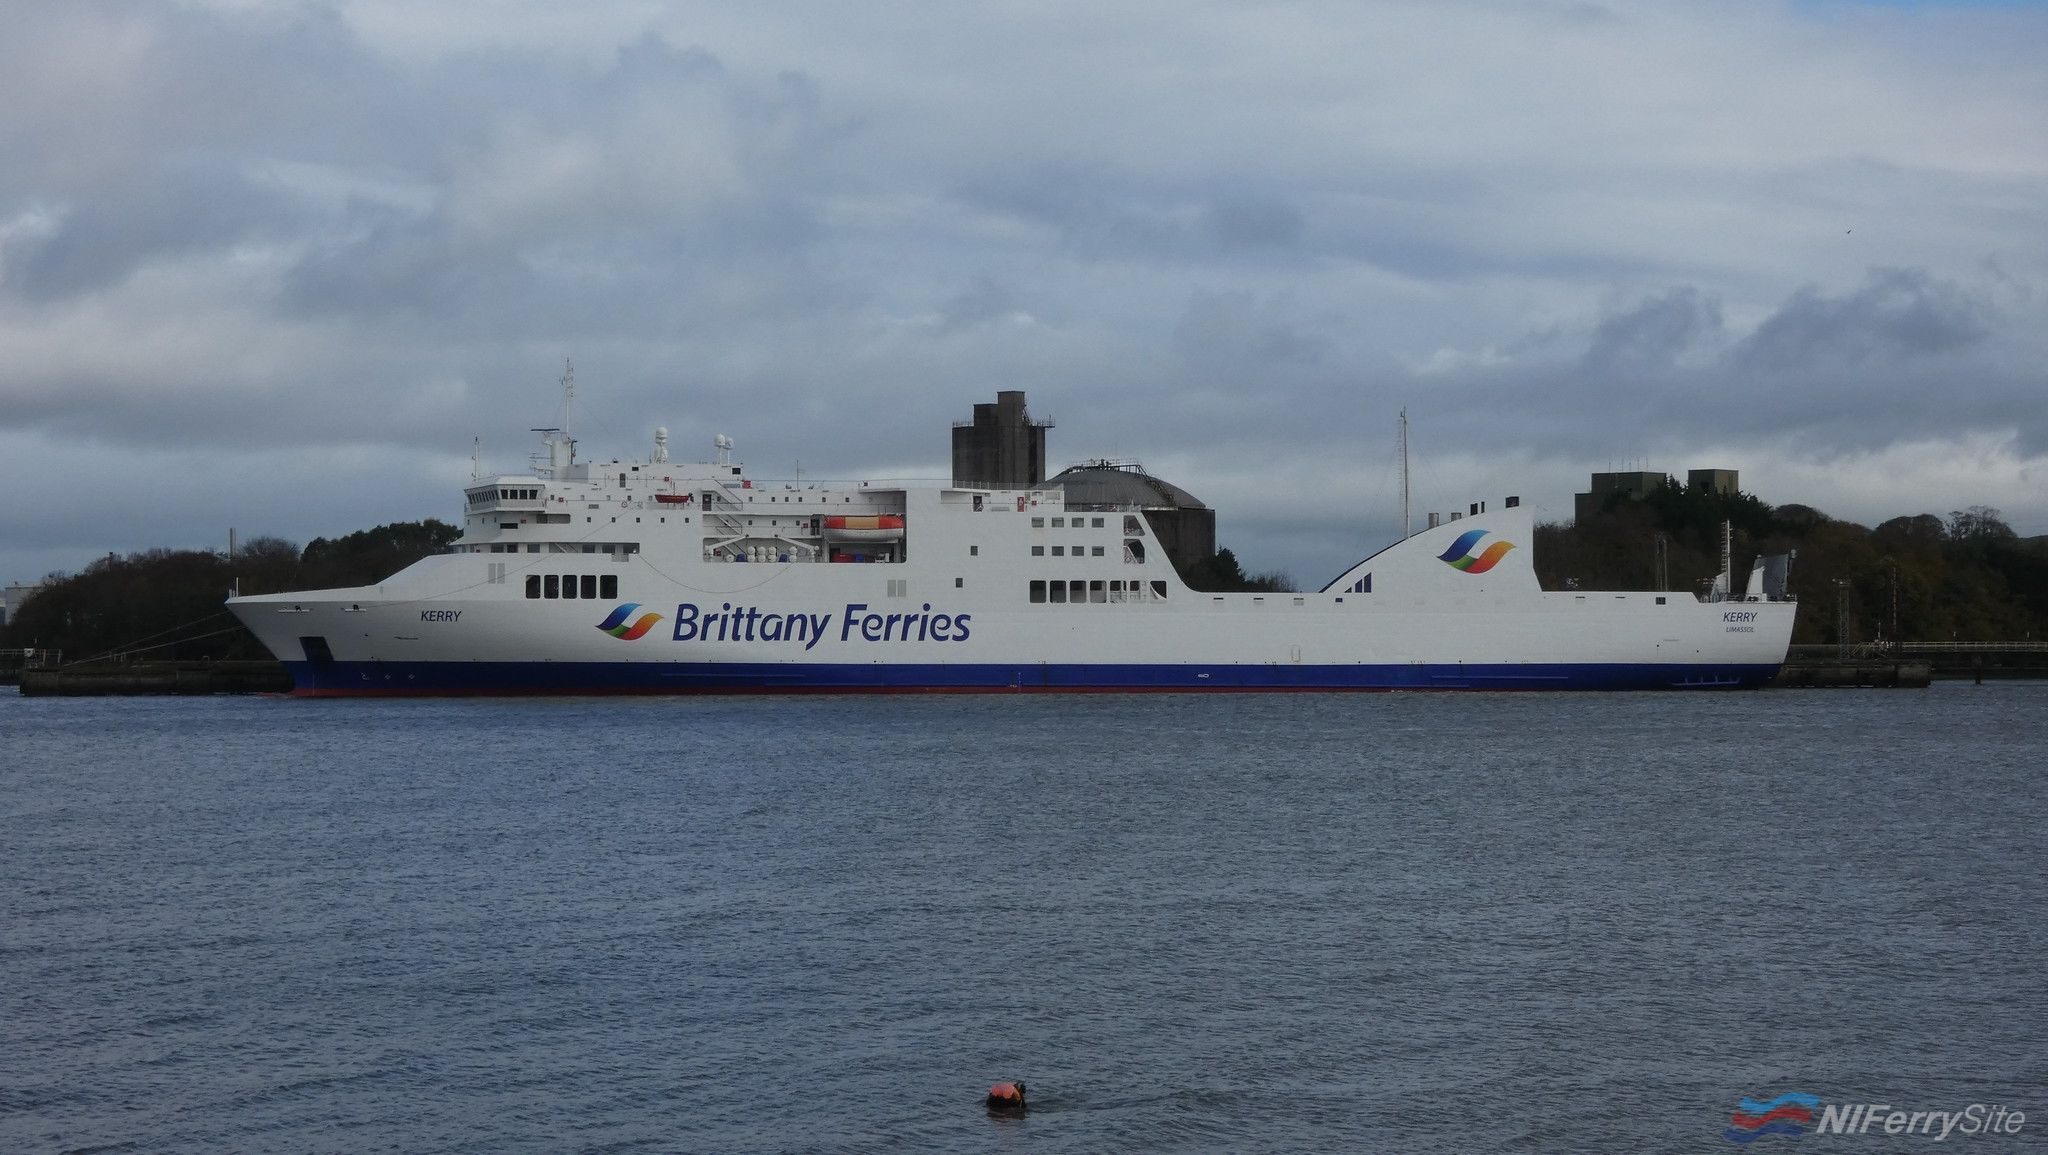 Brittany Ferries KERRY at Marino Point, 03.11.19. Copyright © Patrick Healy.